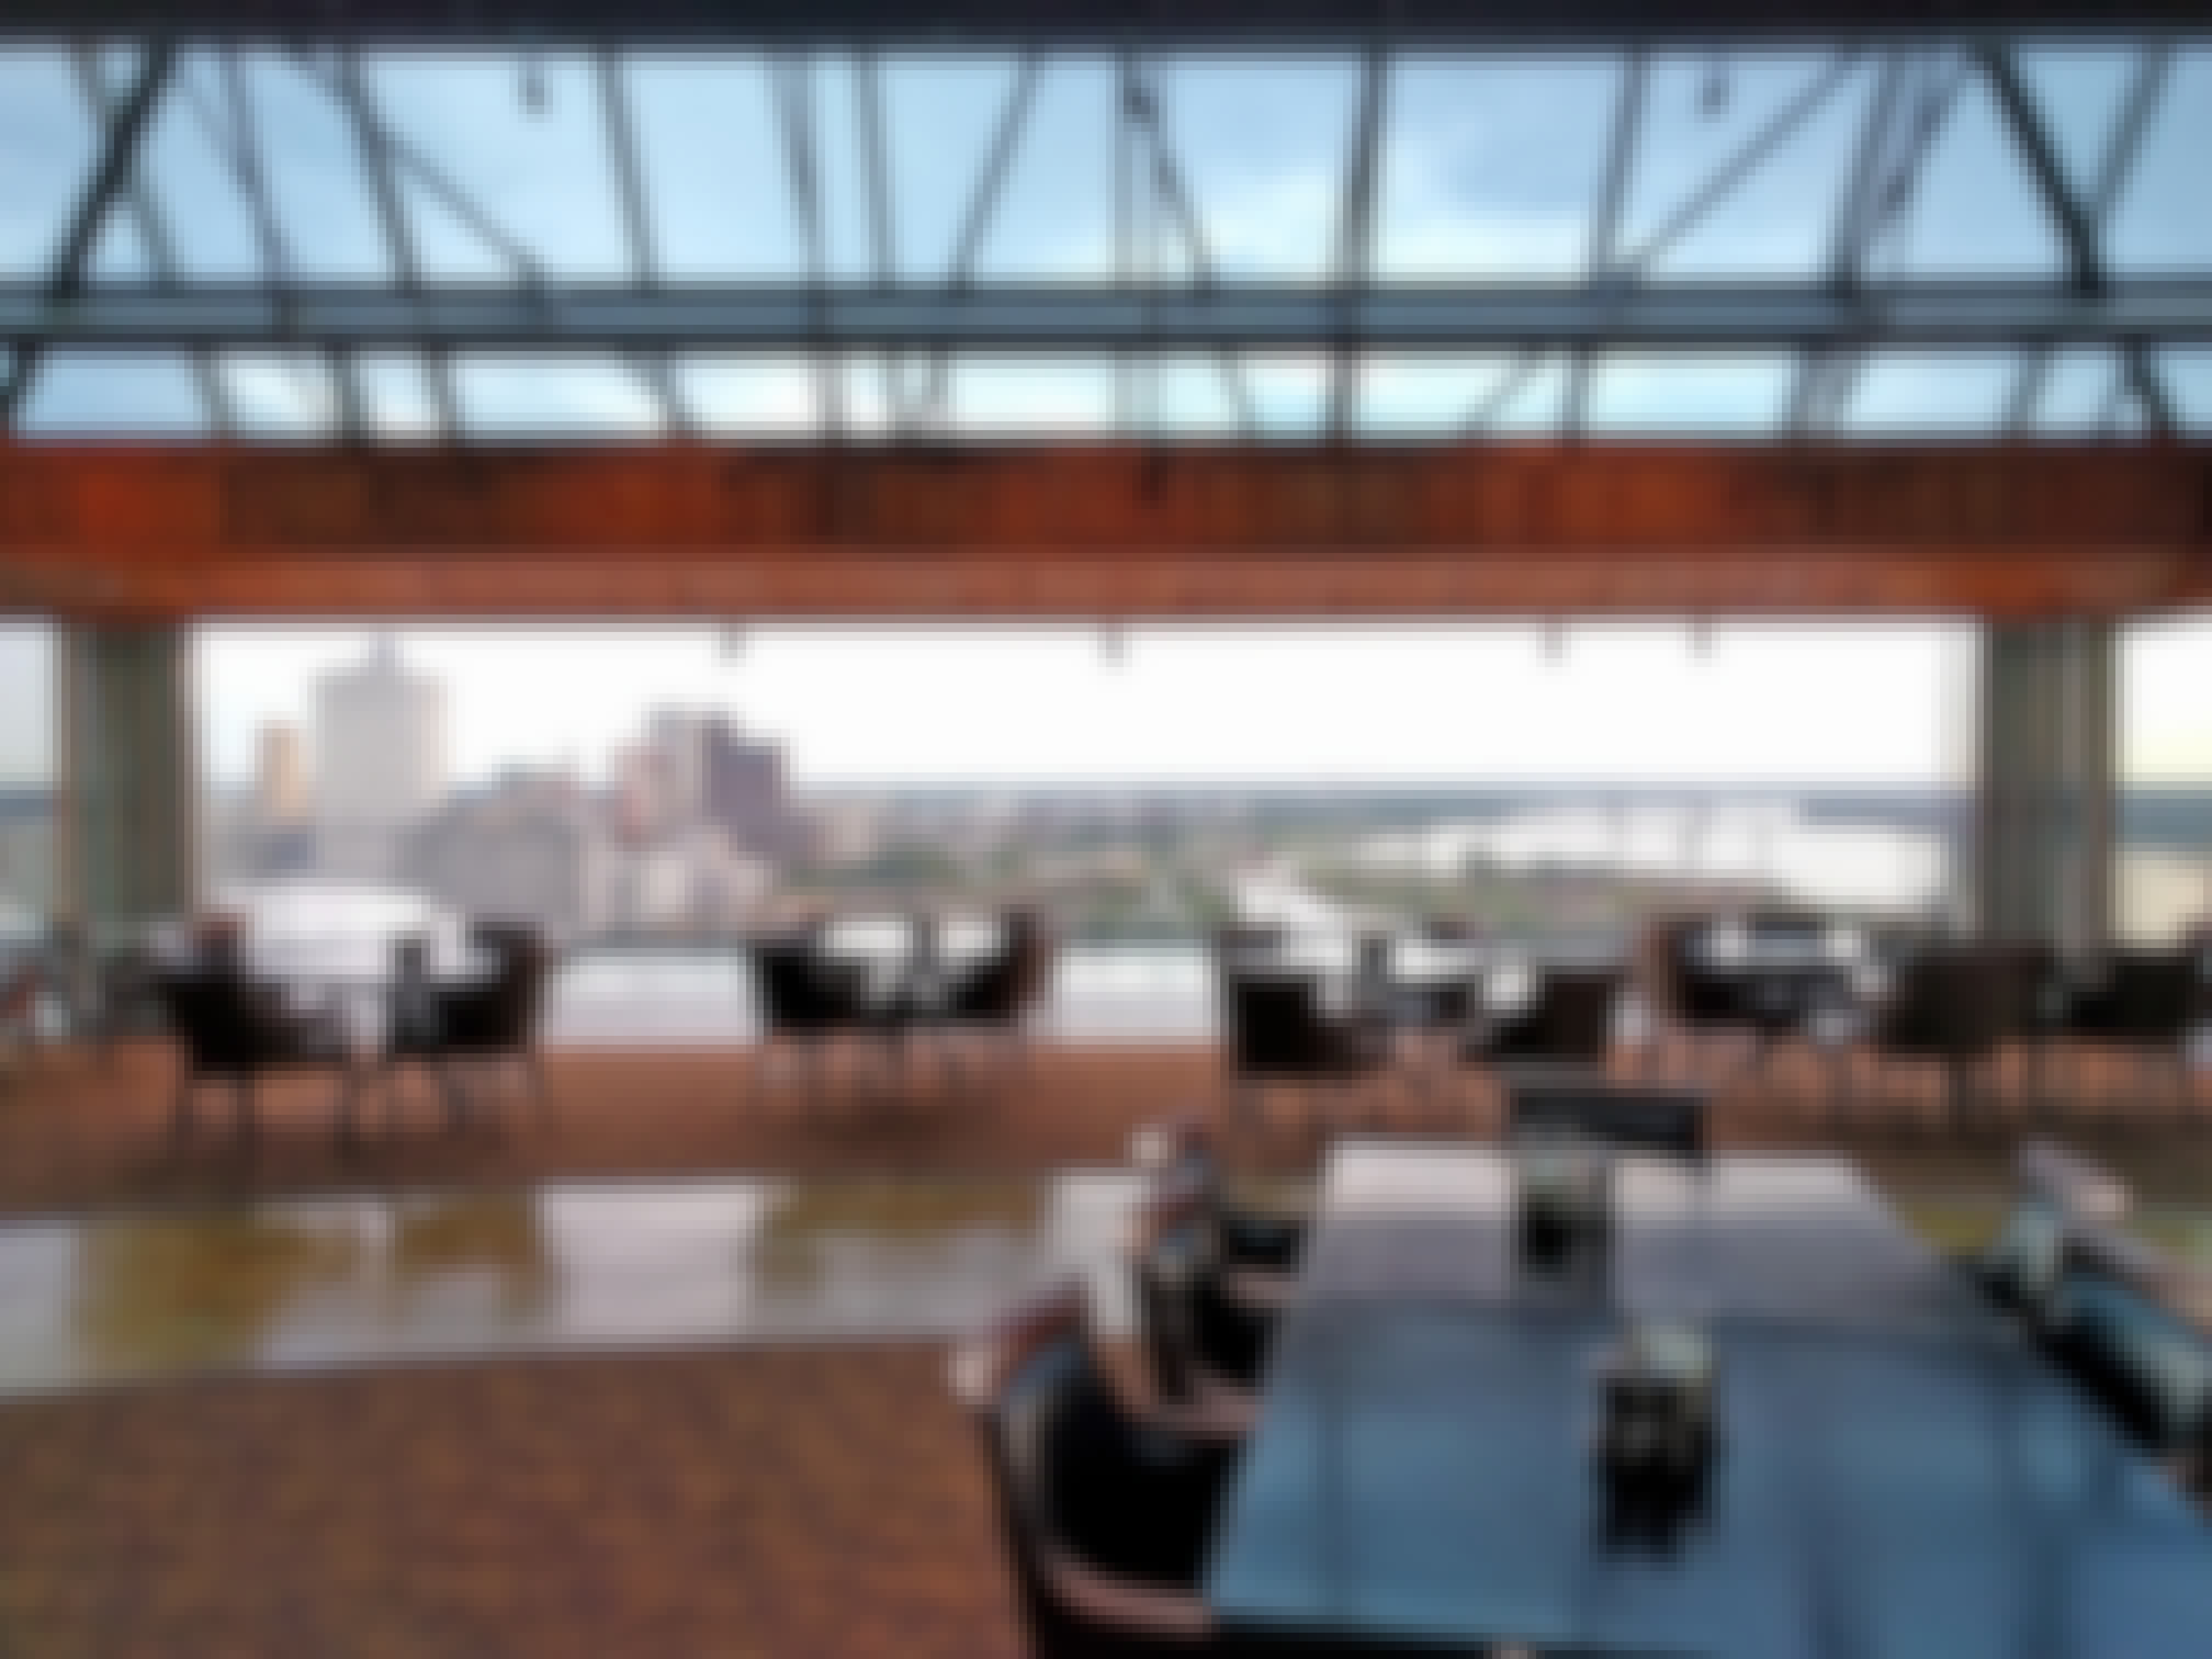 Opening glass wall system offers superior performance at The Lookout.